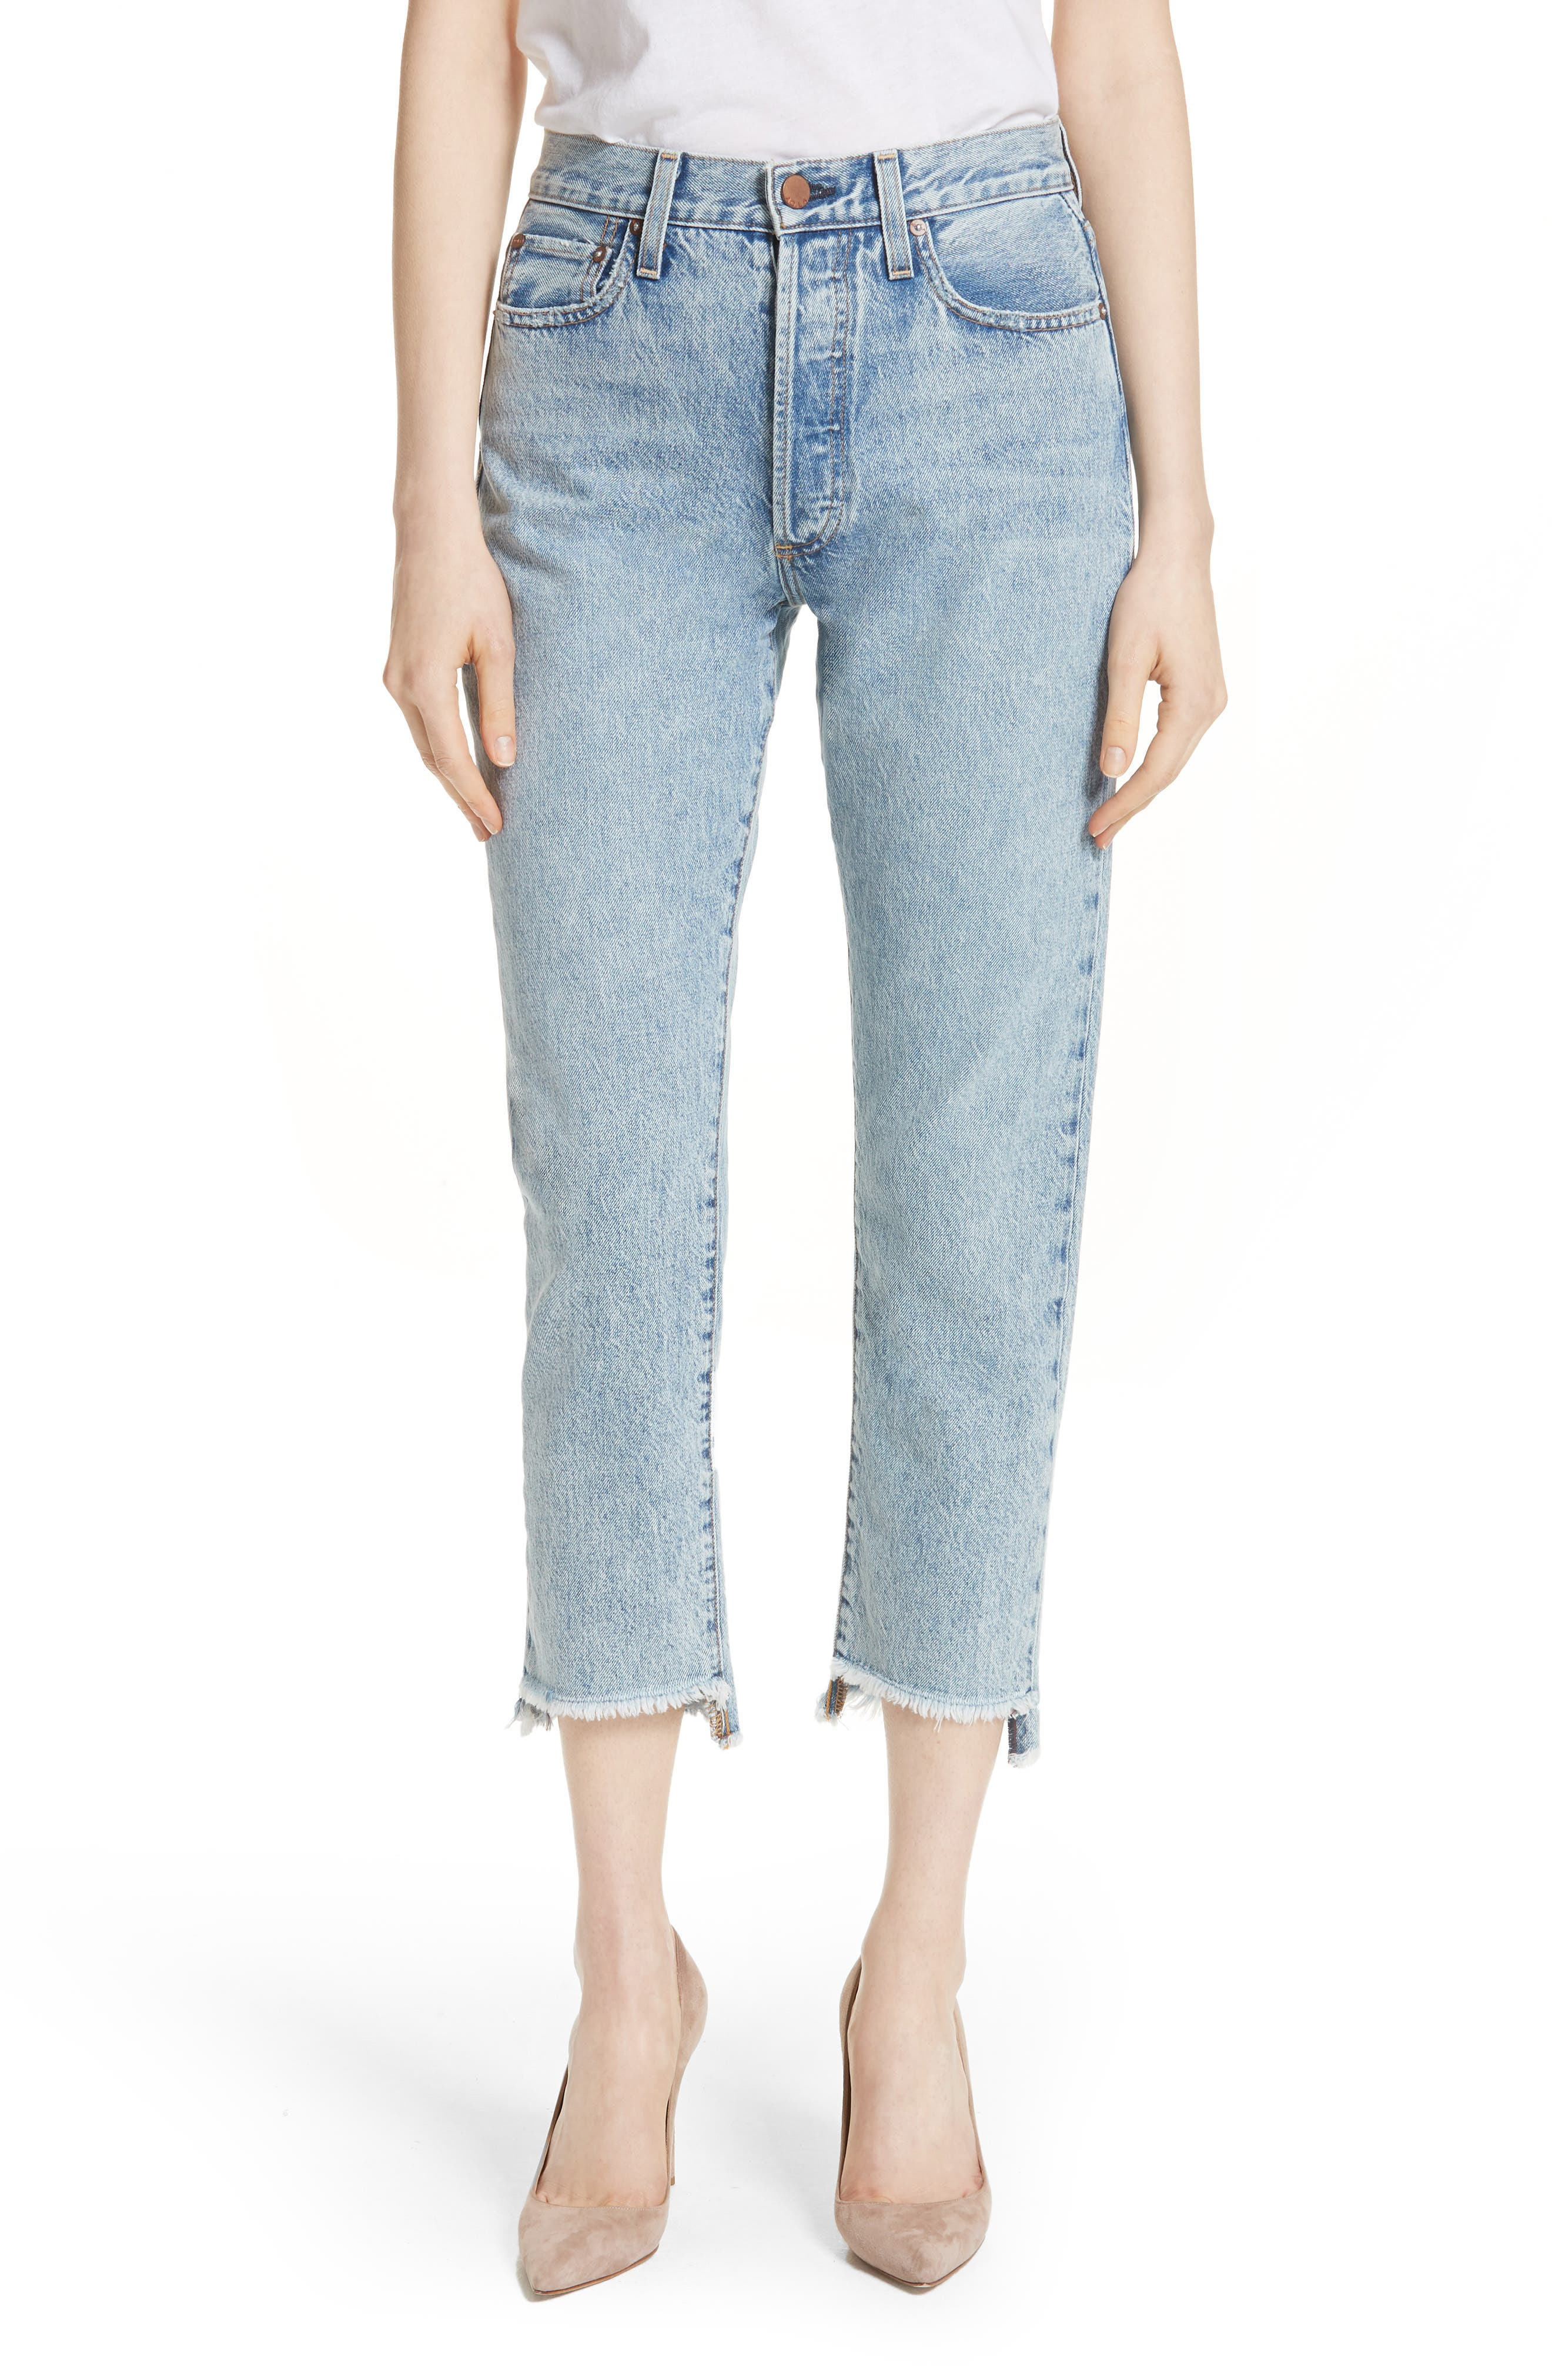 ALICE + OLIVIA JEANS,                             Amazing Good Luck Slim Girlfriend Jeans,                             Main thumbnail 1, color,                             490